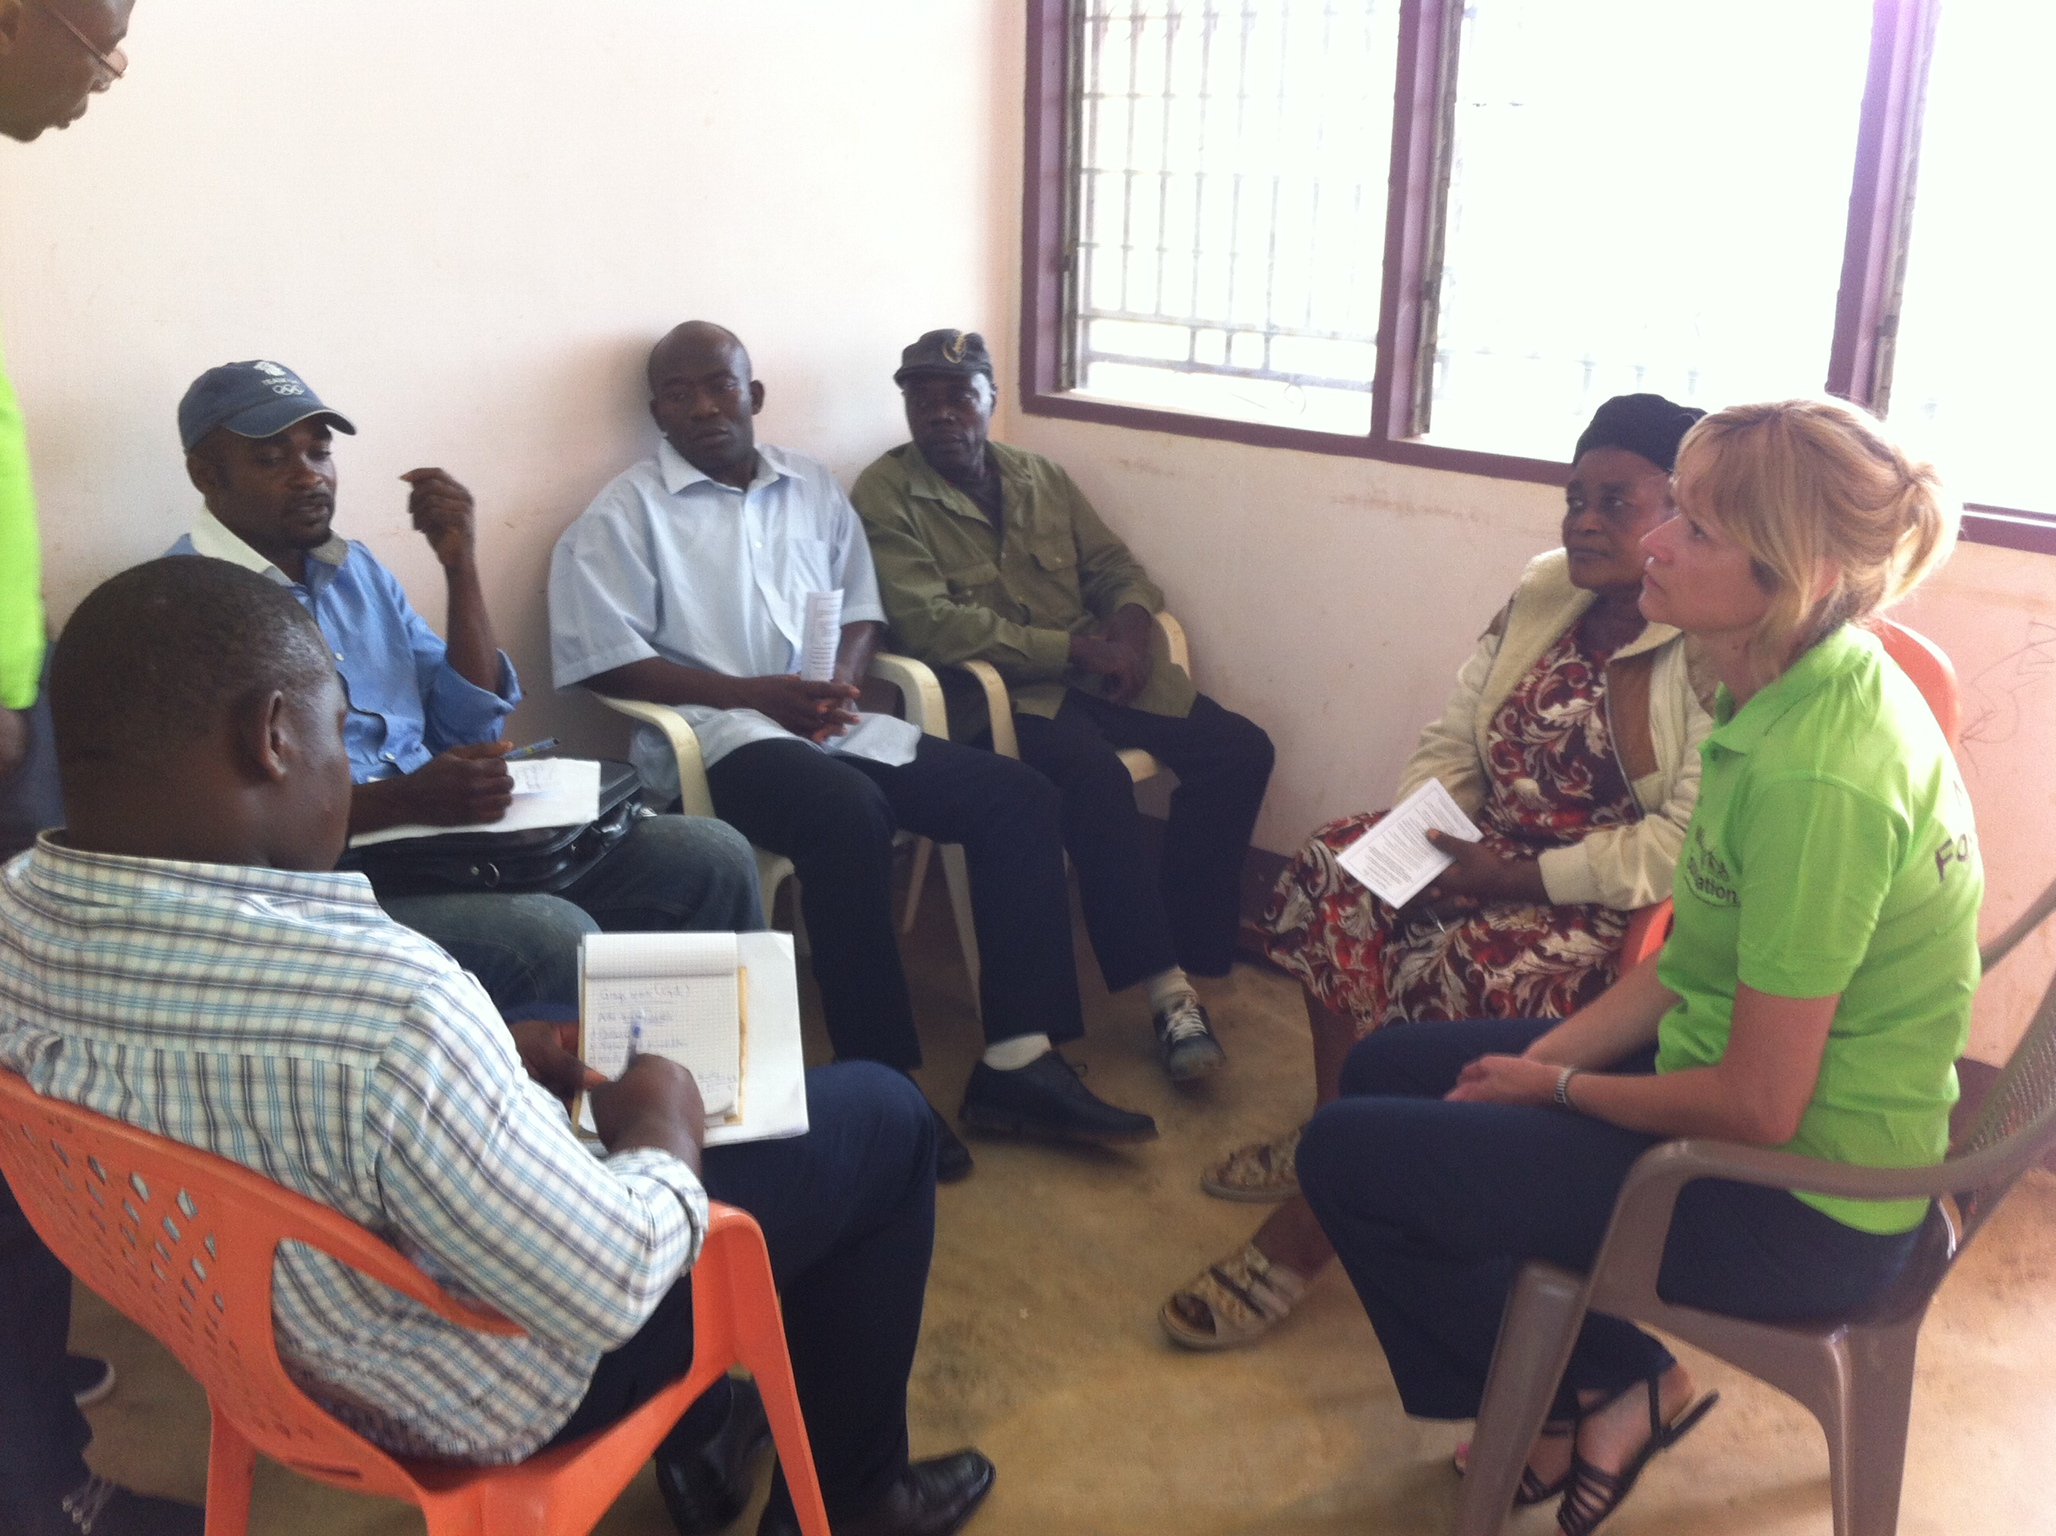 Group discussion with representatives from Nicky's Foundation